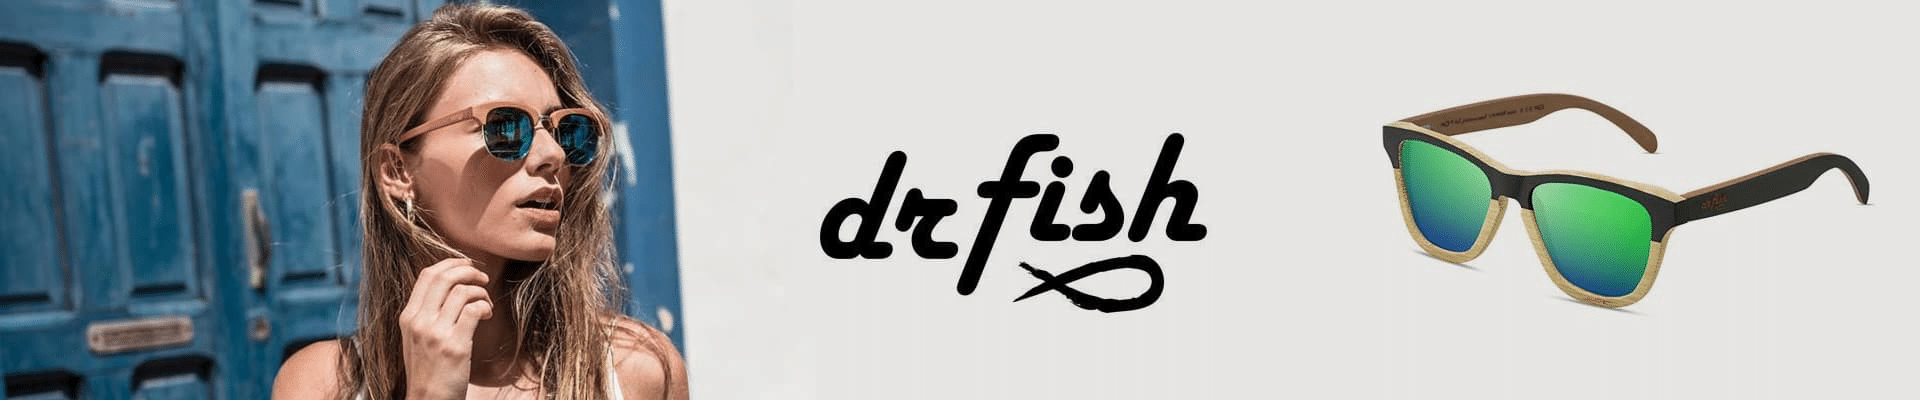 Banner Dr Fish FKSS 2020 - Home